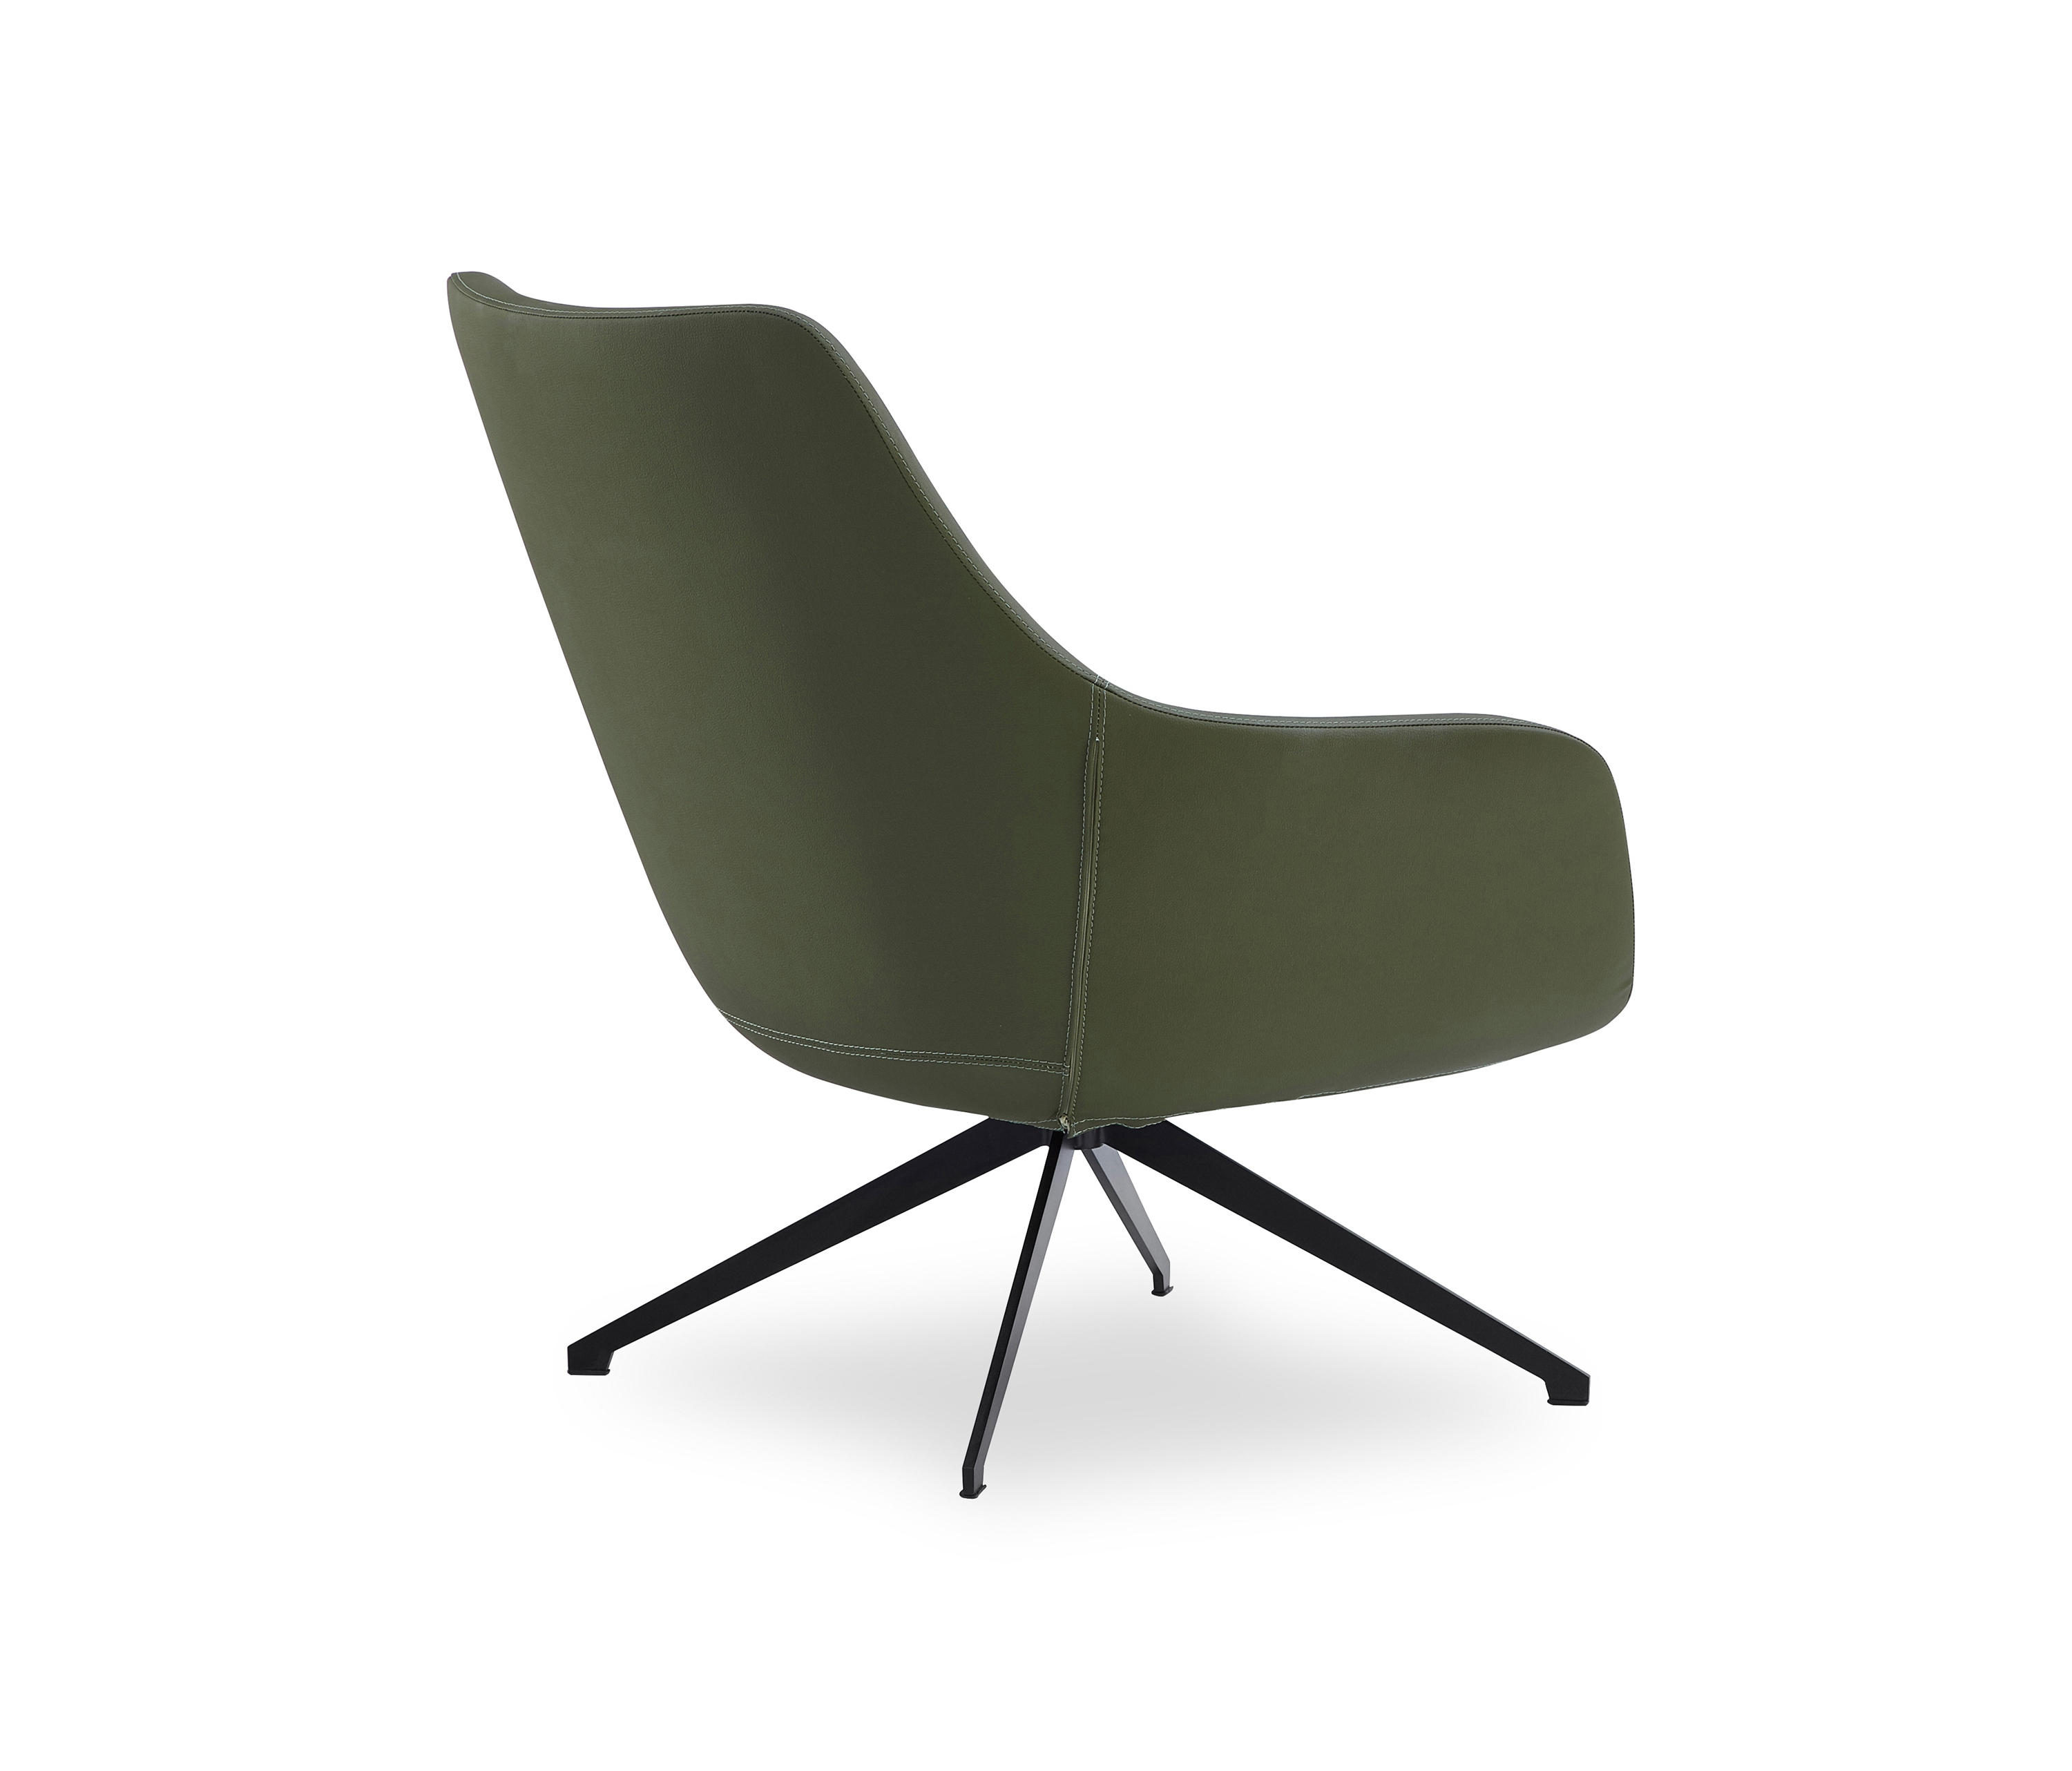 Lamy Armchairs DesignArchitonic B From amp;t 3cLqS5jR4A